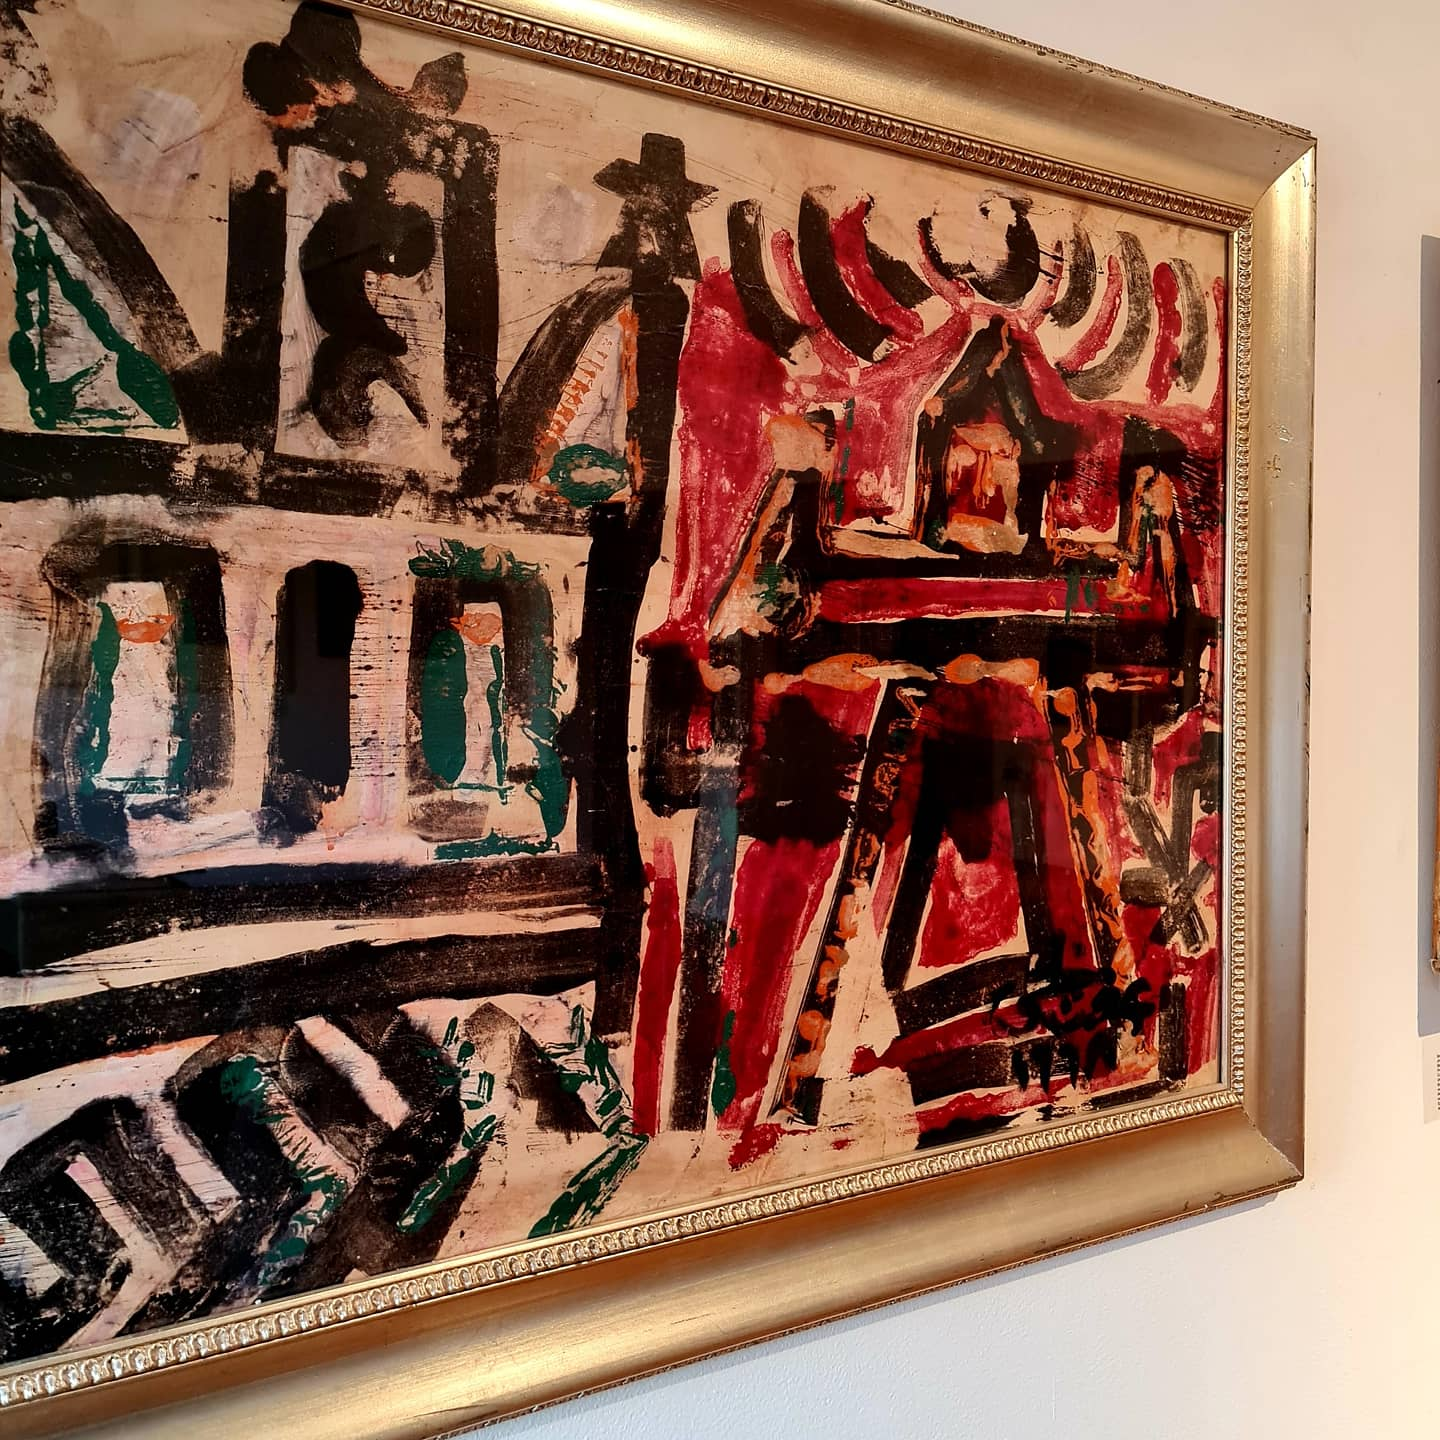 EFFAT NAGHI (1905-1994) 67 x 90 cm Oil on cardboard Signed and dated 1968 lower right